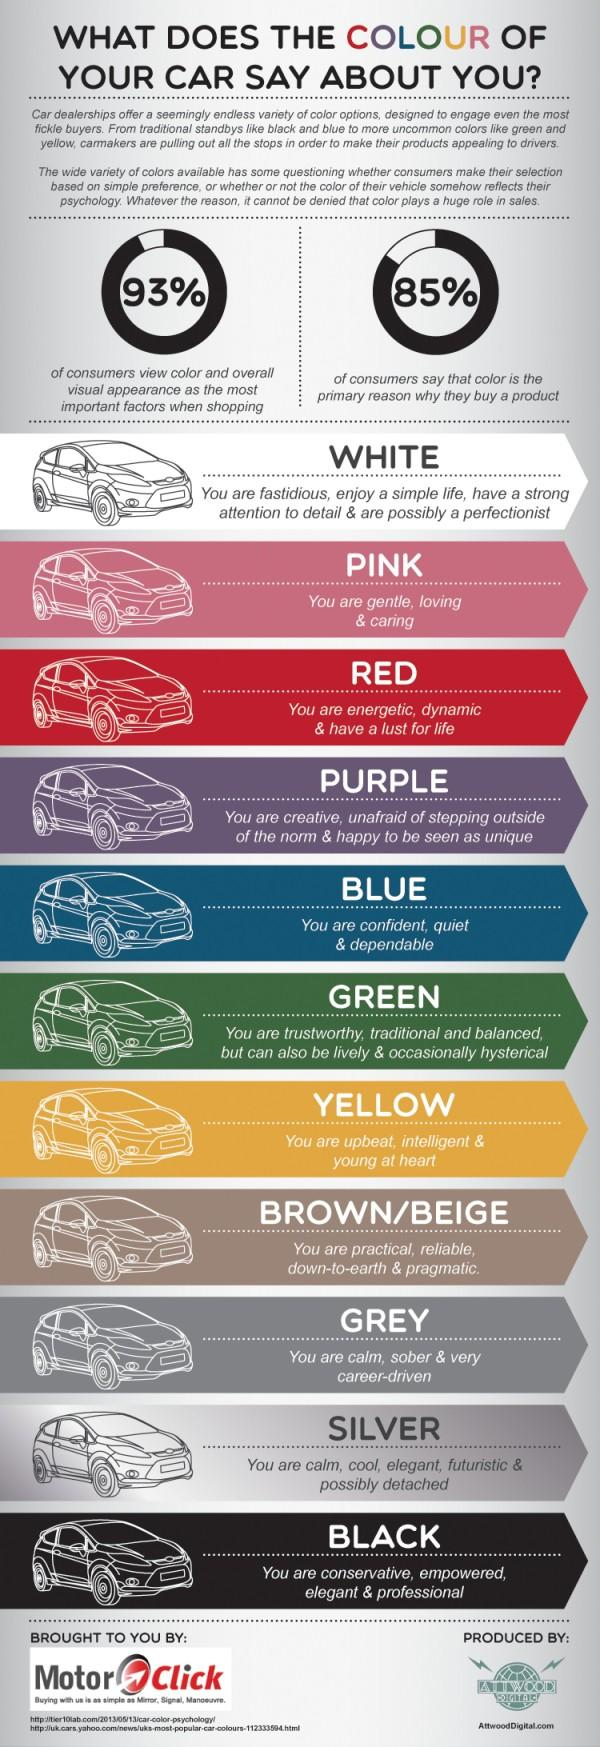 What Does the Colour of Your Car Say About You